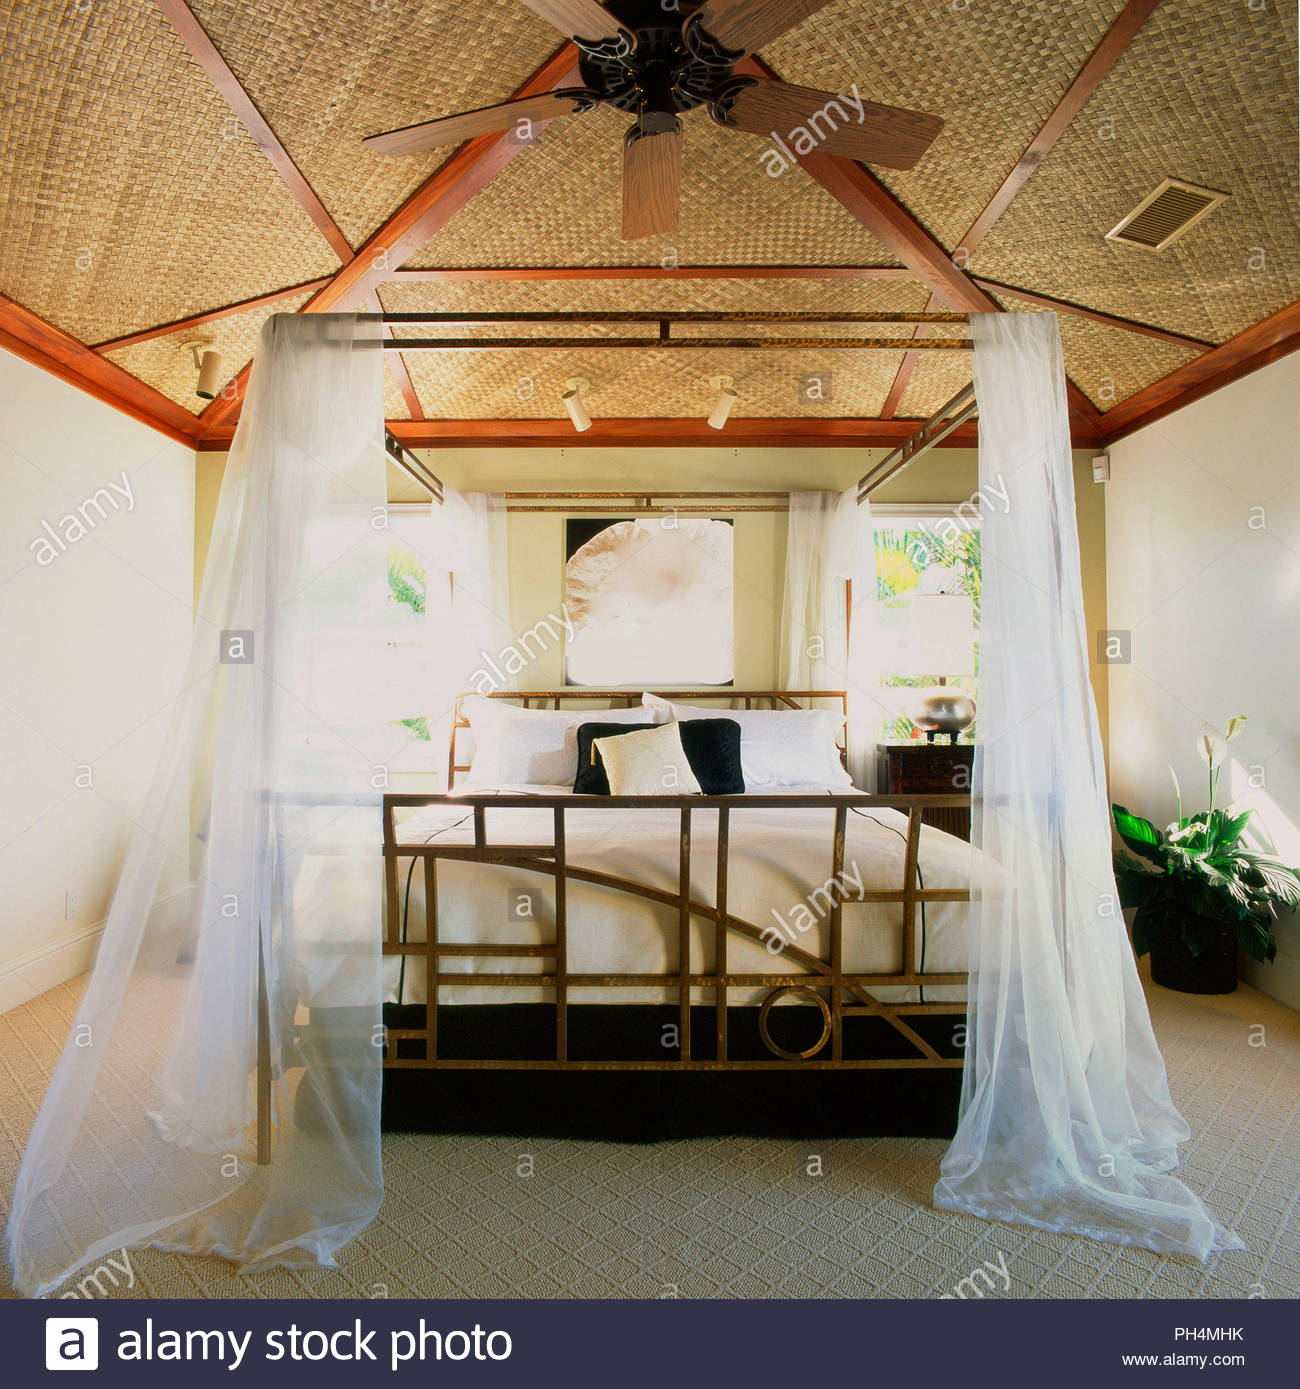 Four poster bed - Stock Image